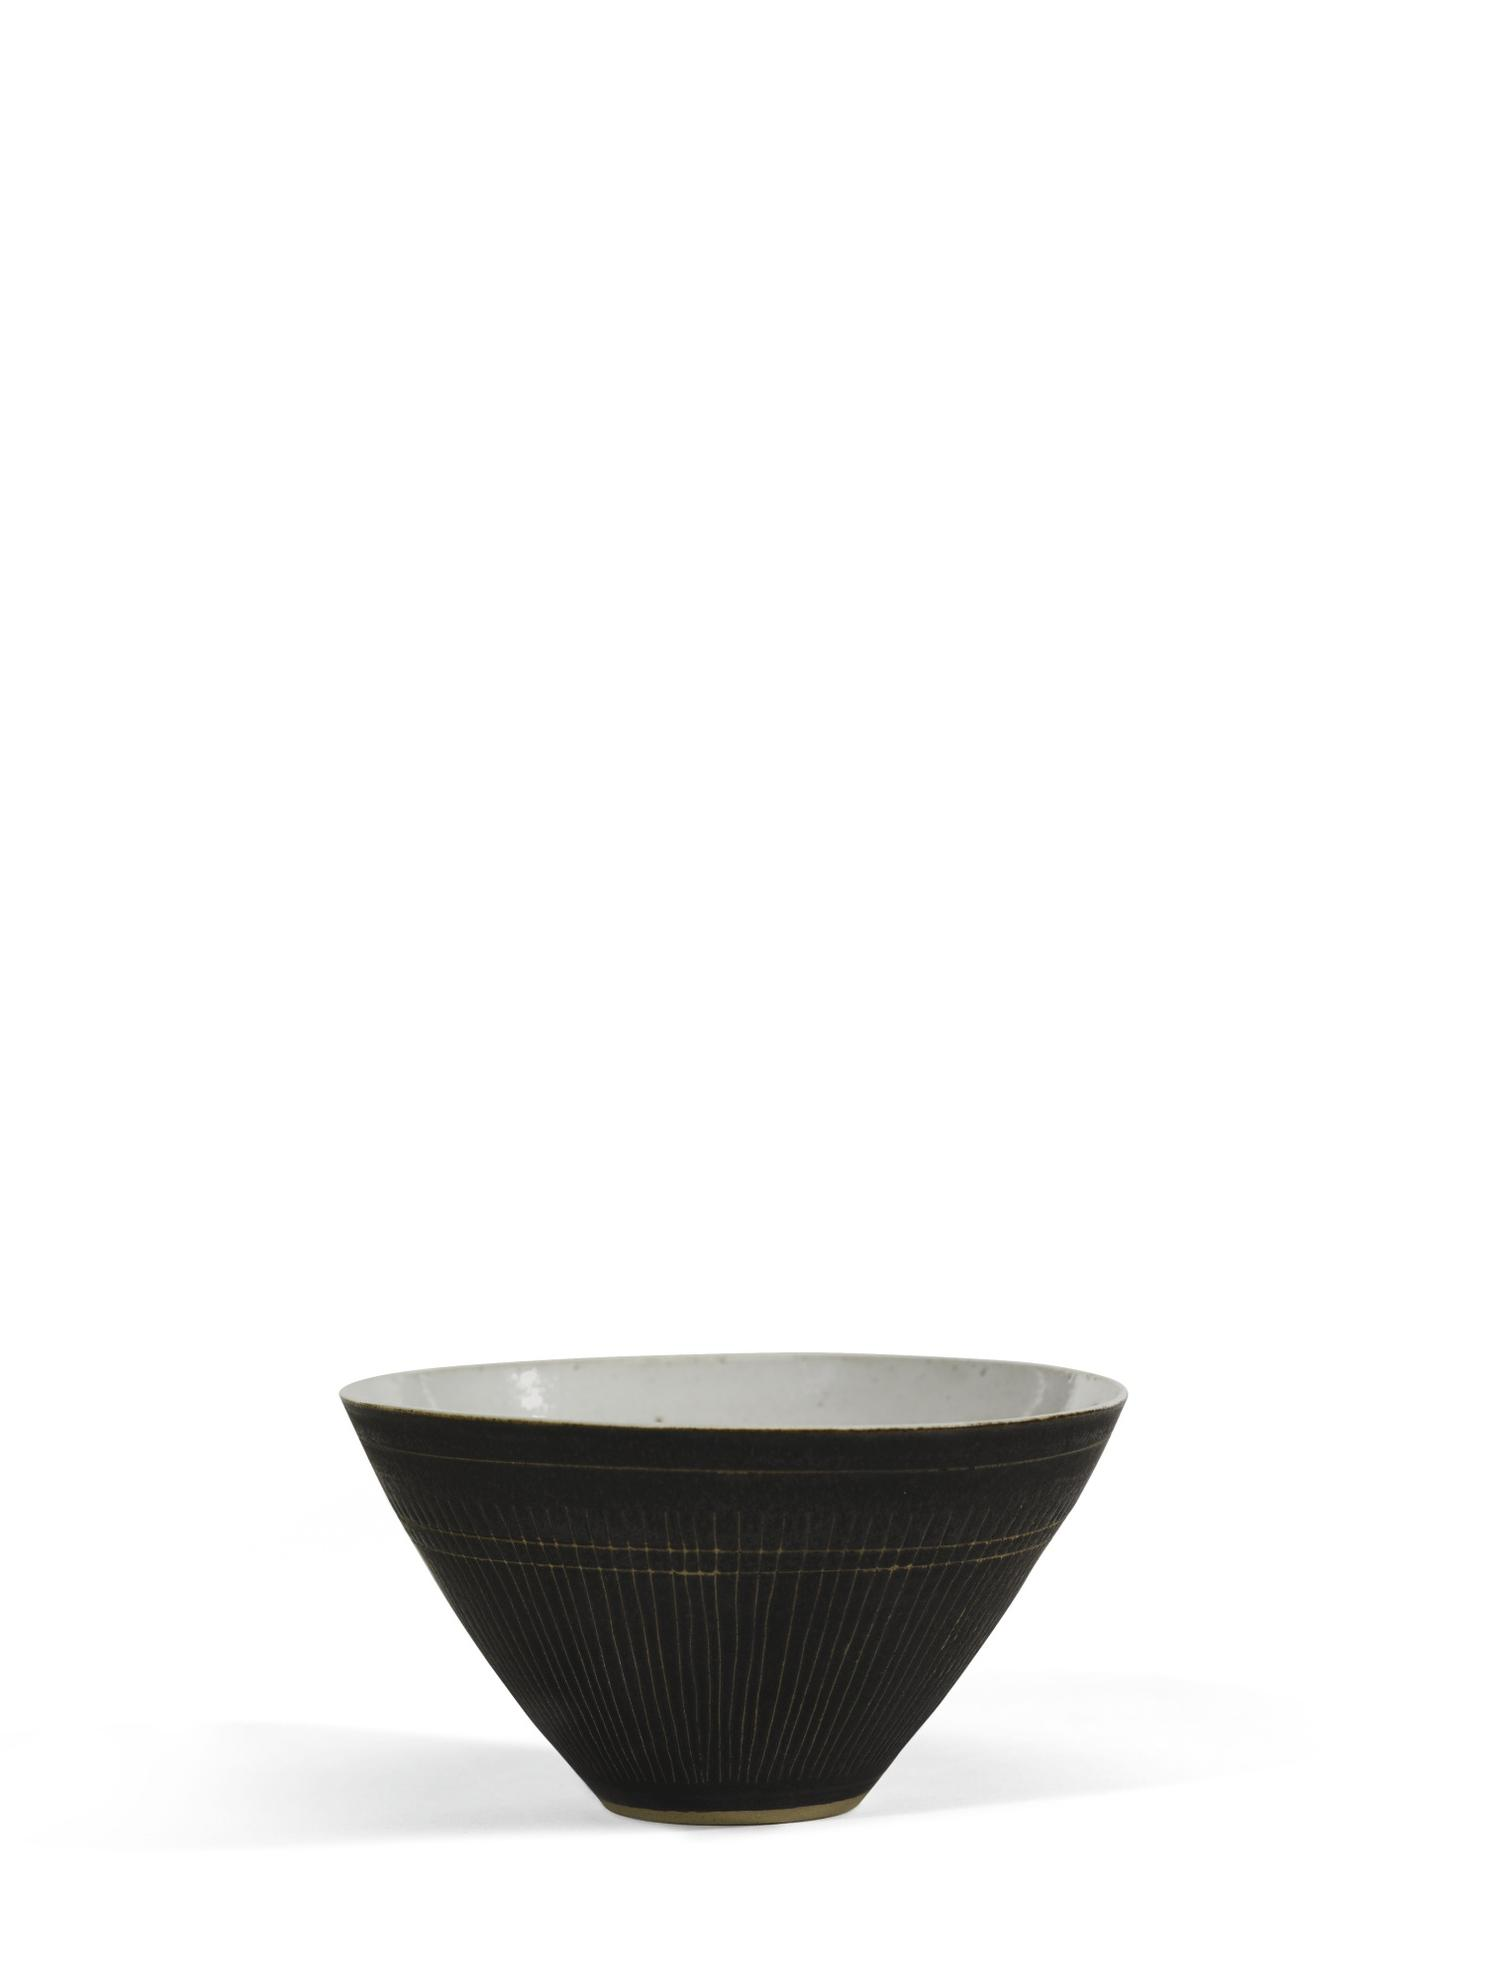 Dame Lucie Rie - Small Bowl-1950